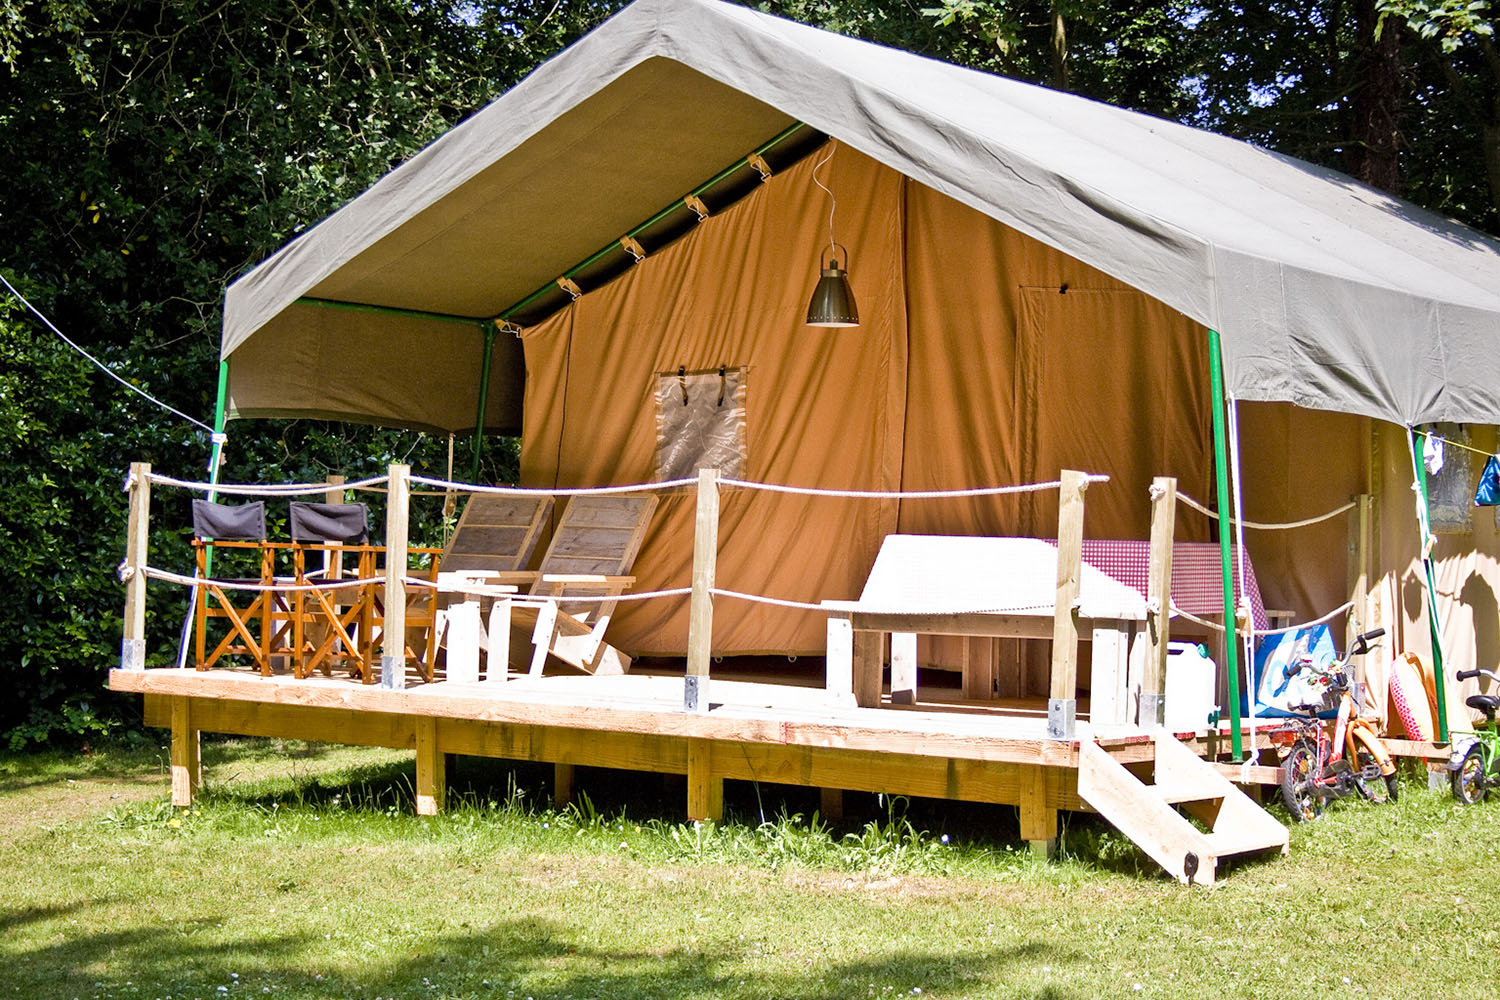 Safari tents, for 2 to 5 people